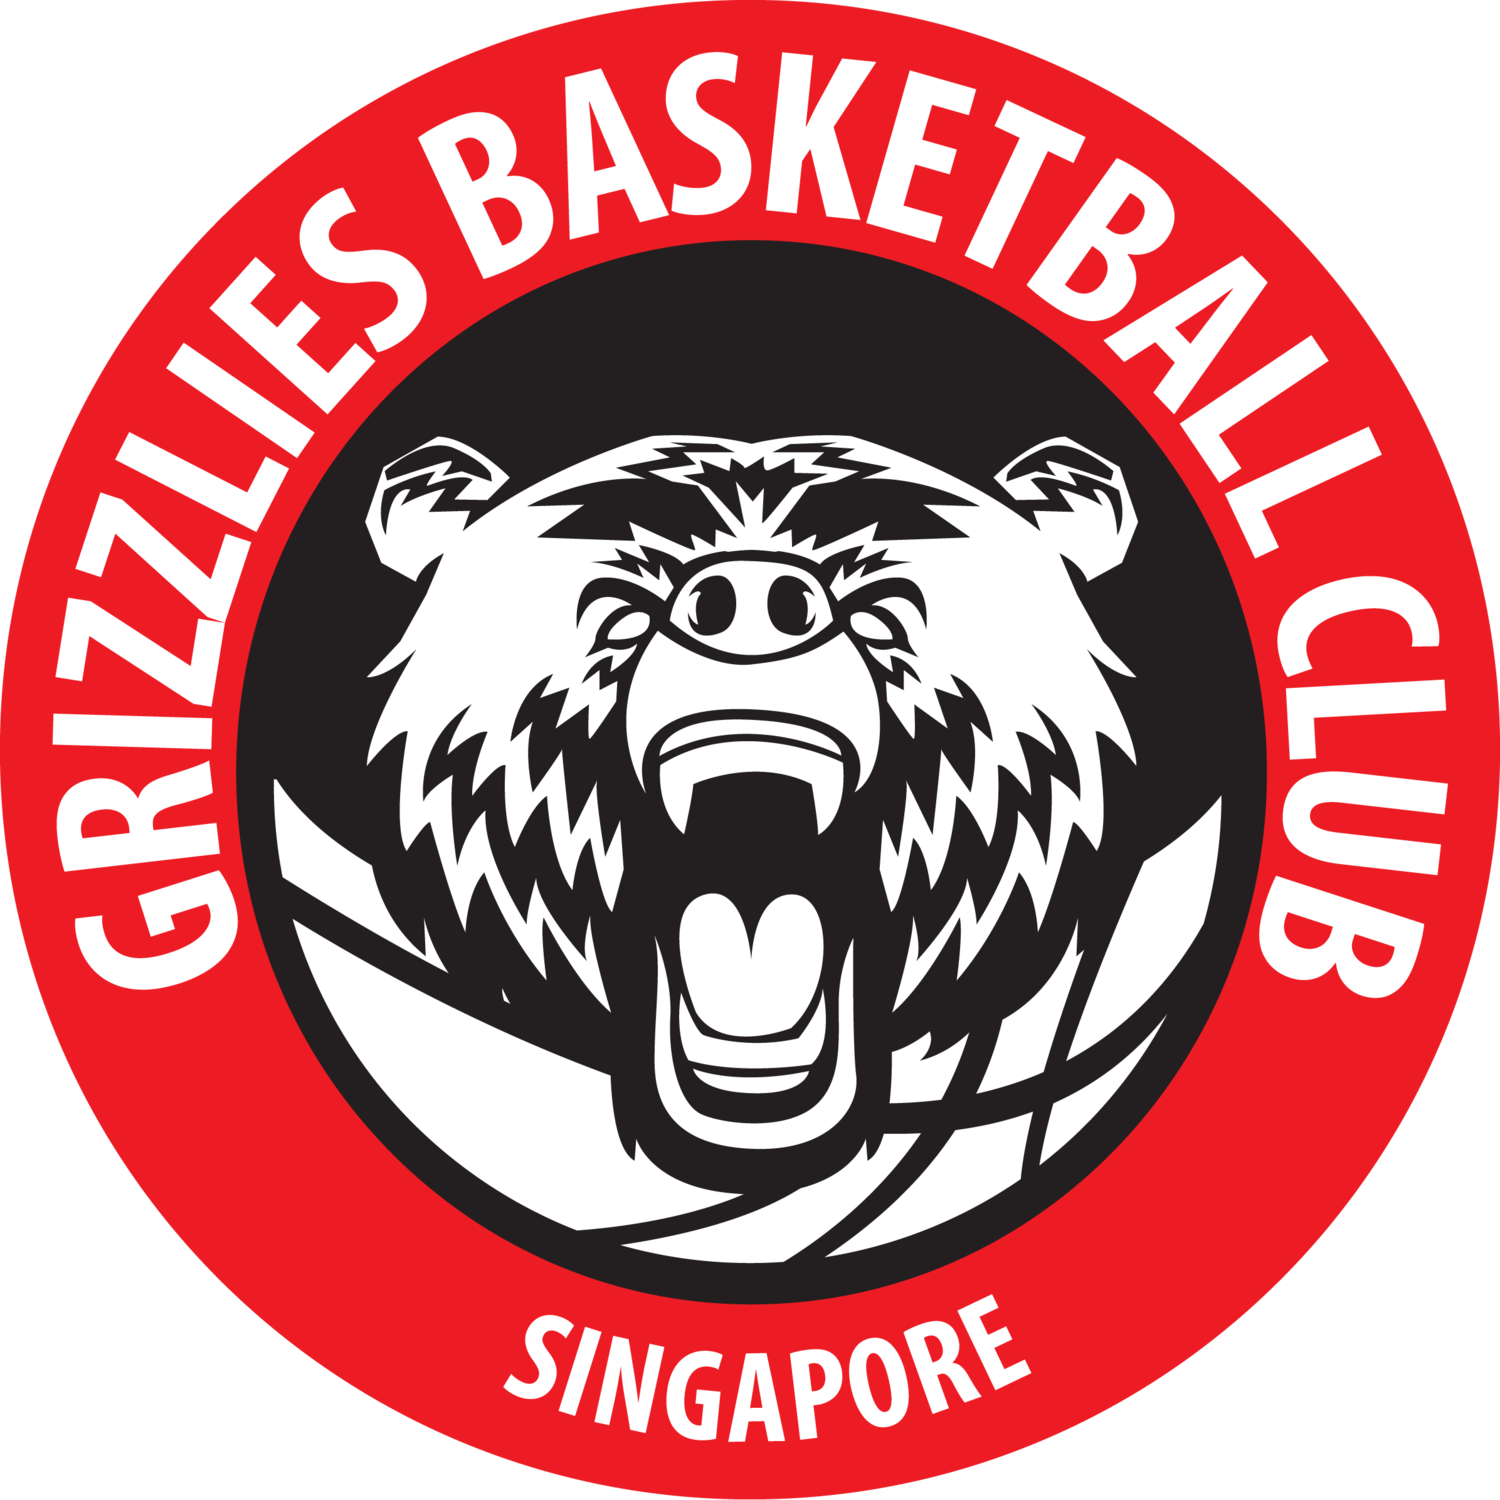 Grizzlies Basketball Club